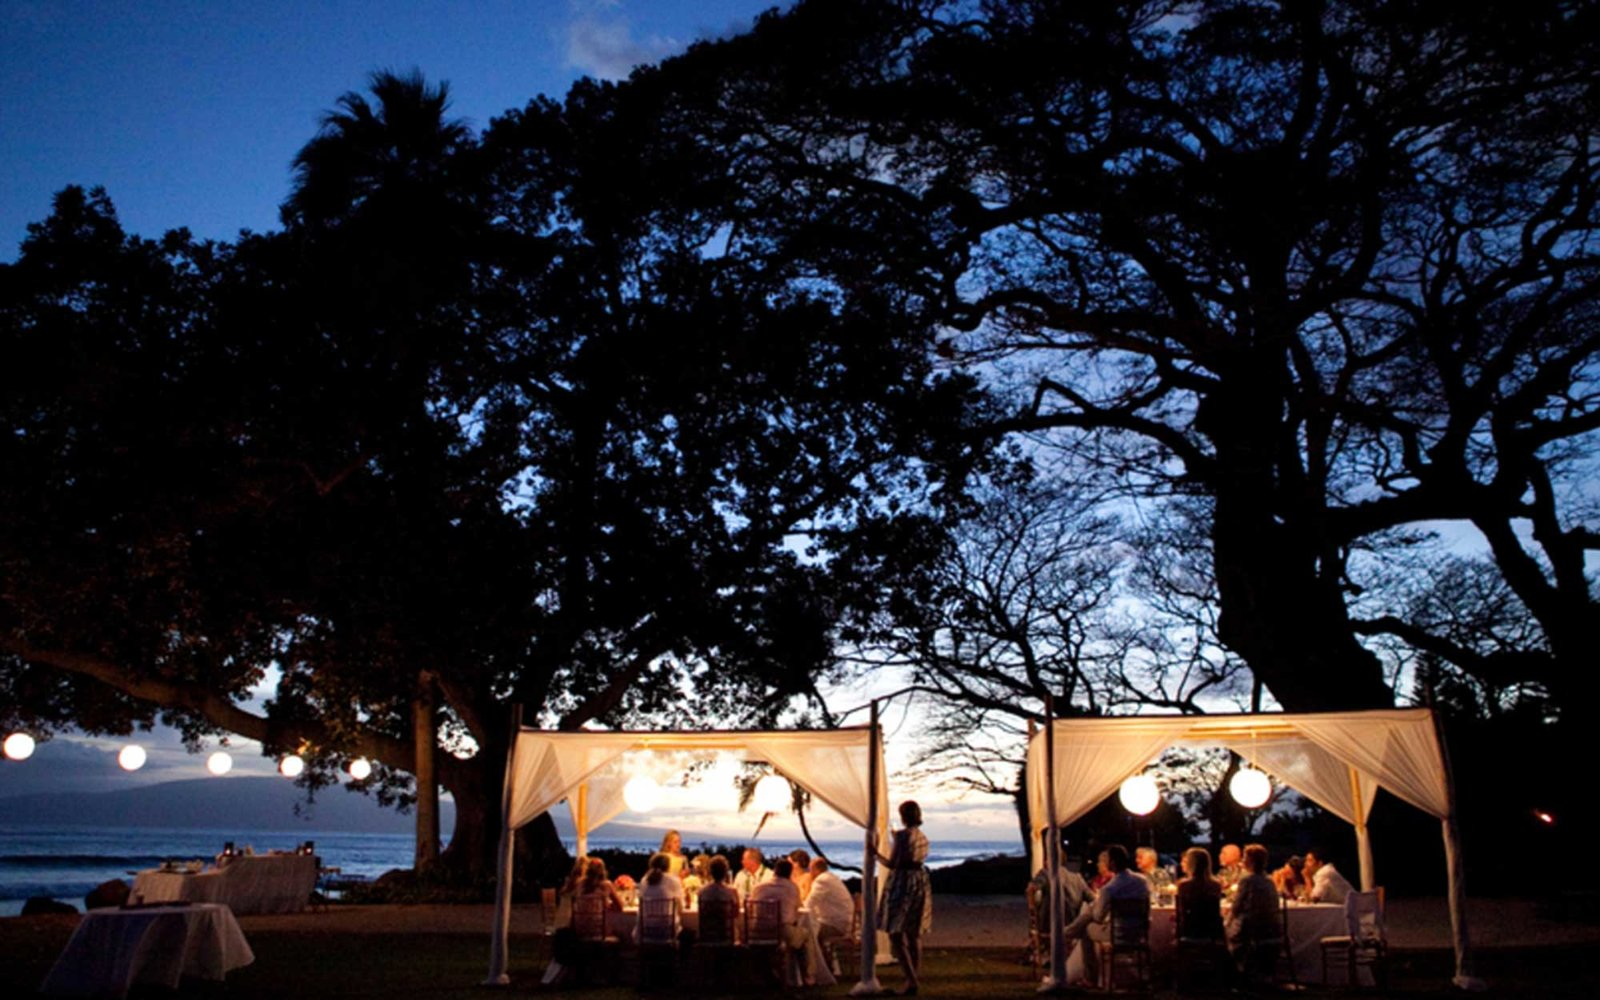 Best Destination Wedding Ideas in Hawaii